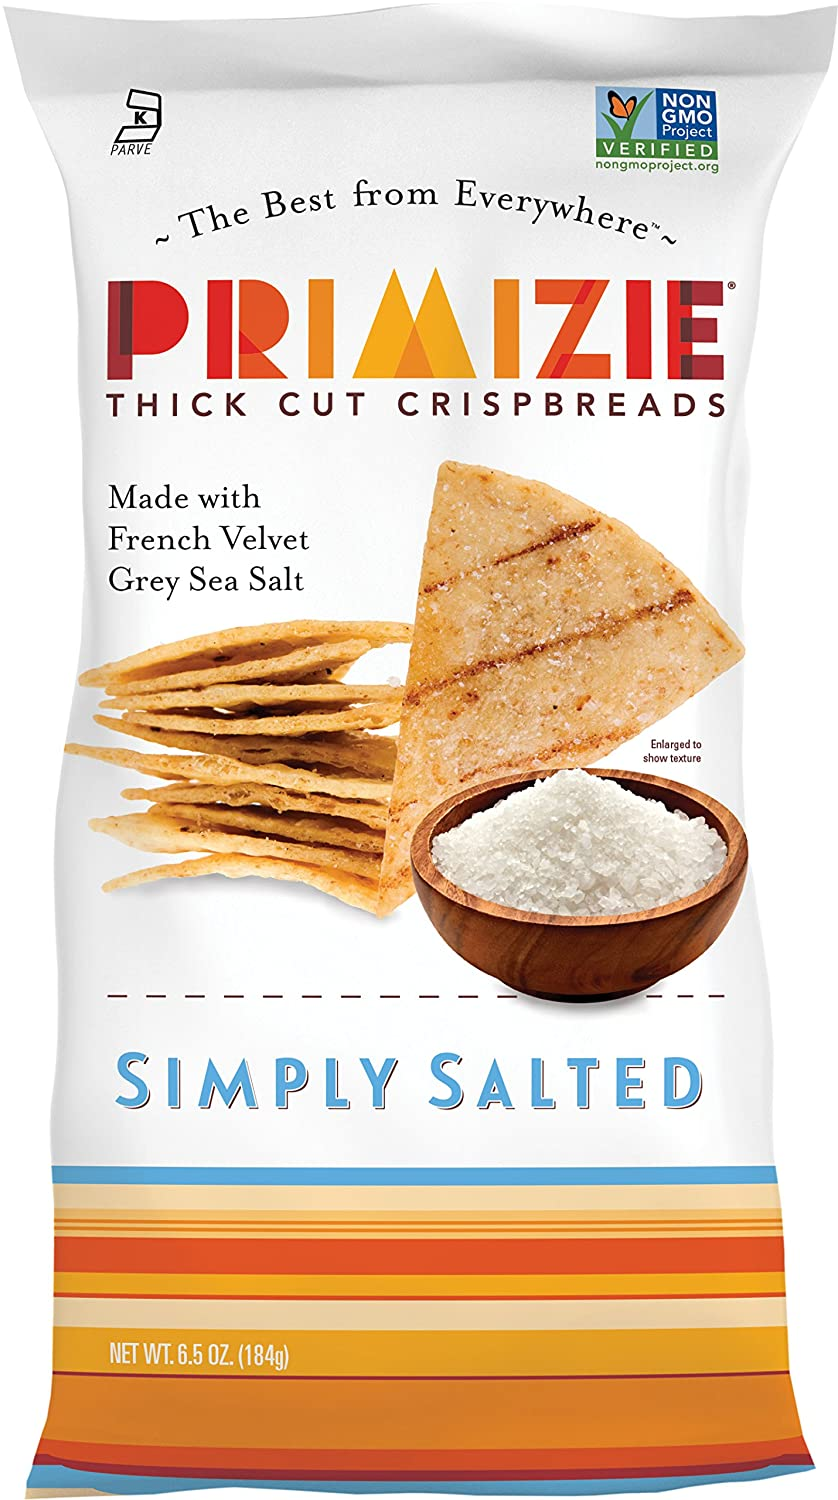 Amazon.com: Primizie Thick Cut Crispbread, Simply Salted, 6.5 Ounce (Pack of 12)